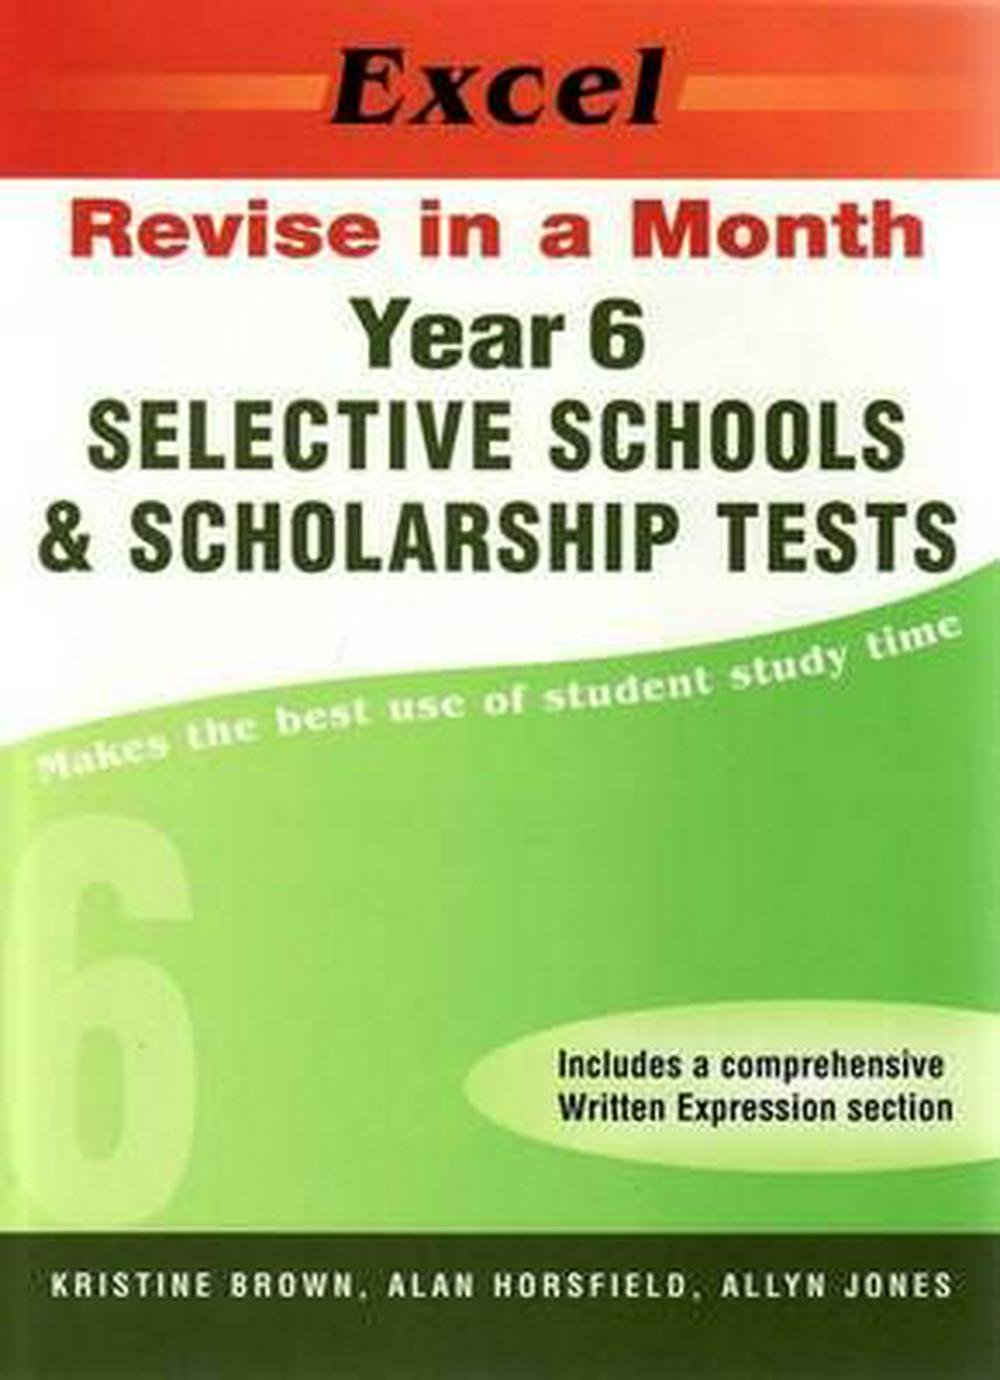 Revise in a Month Year 6 Selective Schools